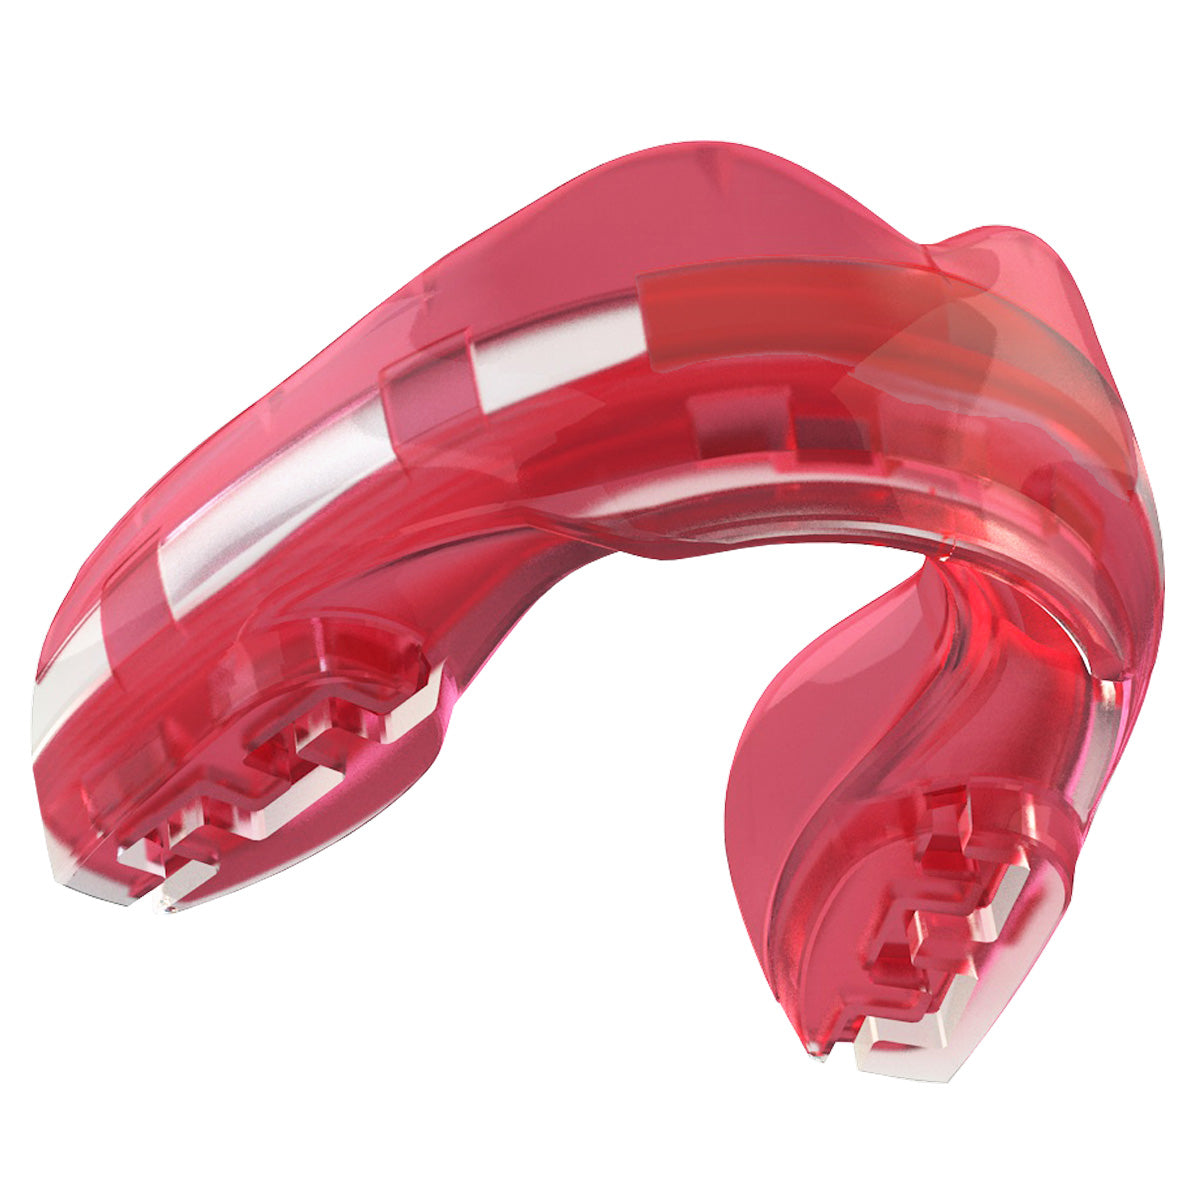 SAFEJAWZ® Ortho Series Self-Fit Mouthguard for Braces - Ice Pink